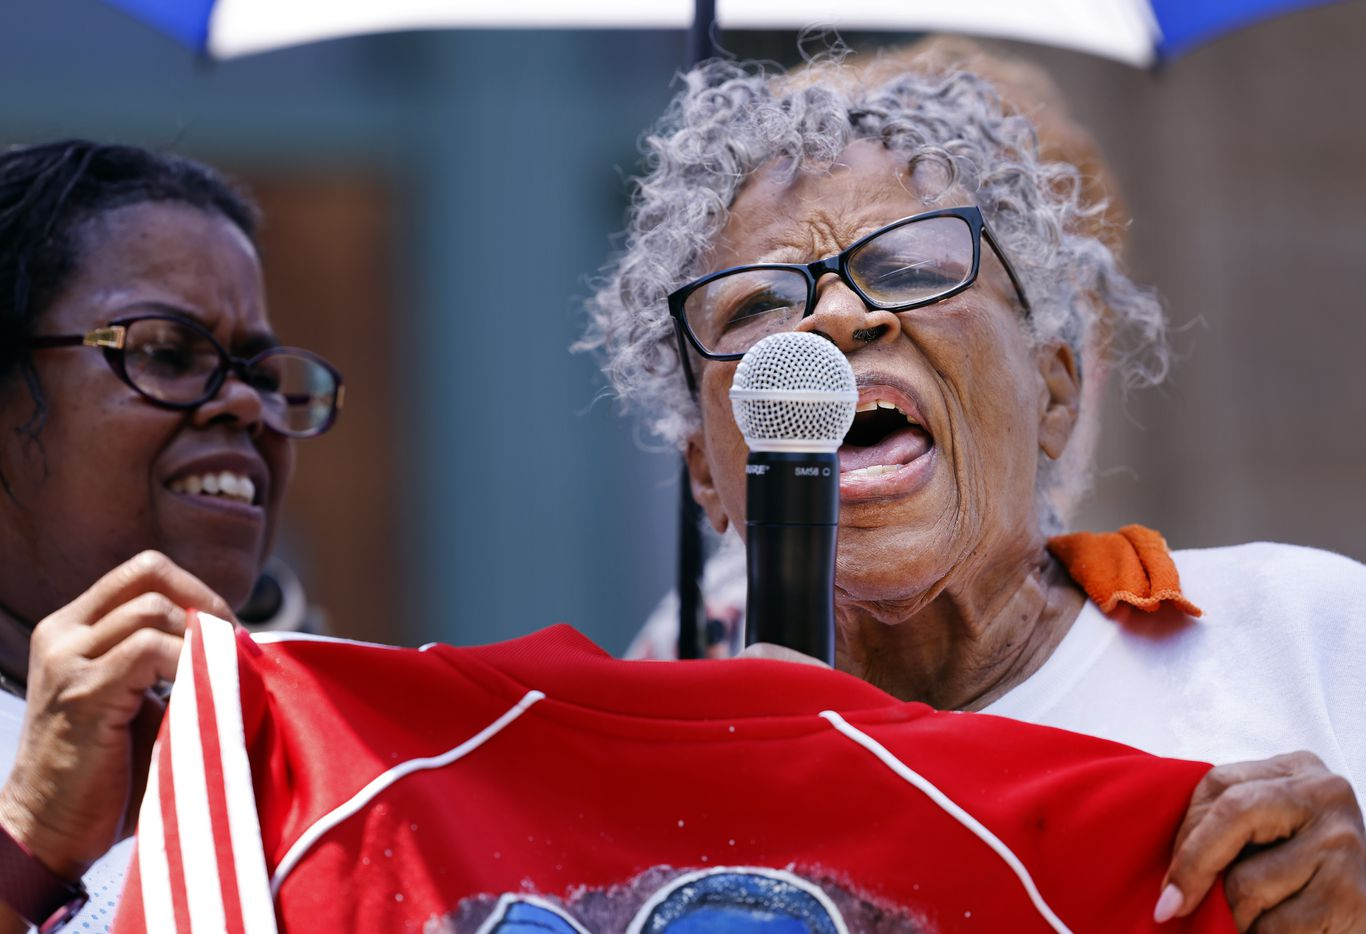 After cooling down from her march, Opal Lee, 94, (right) spoke to supporters outside the Tarrant County Courthouse in downtown Fort Worth, Saturday morning, June 19, 2021.